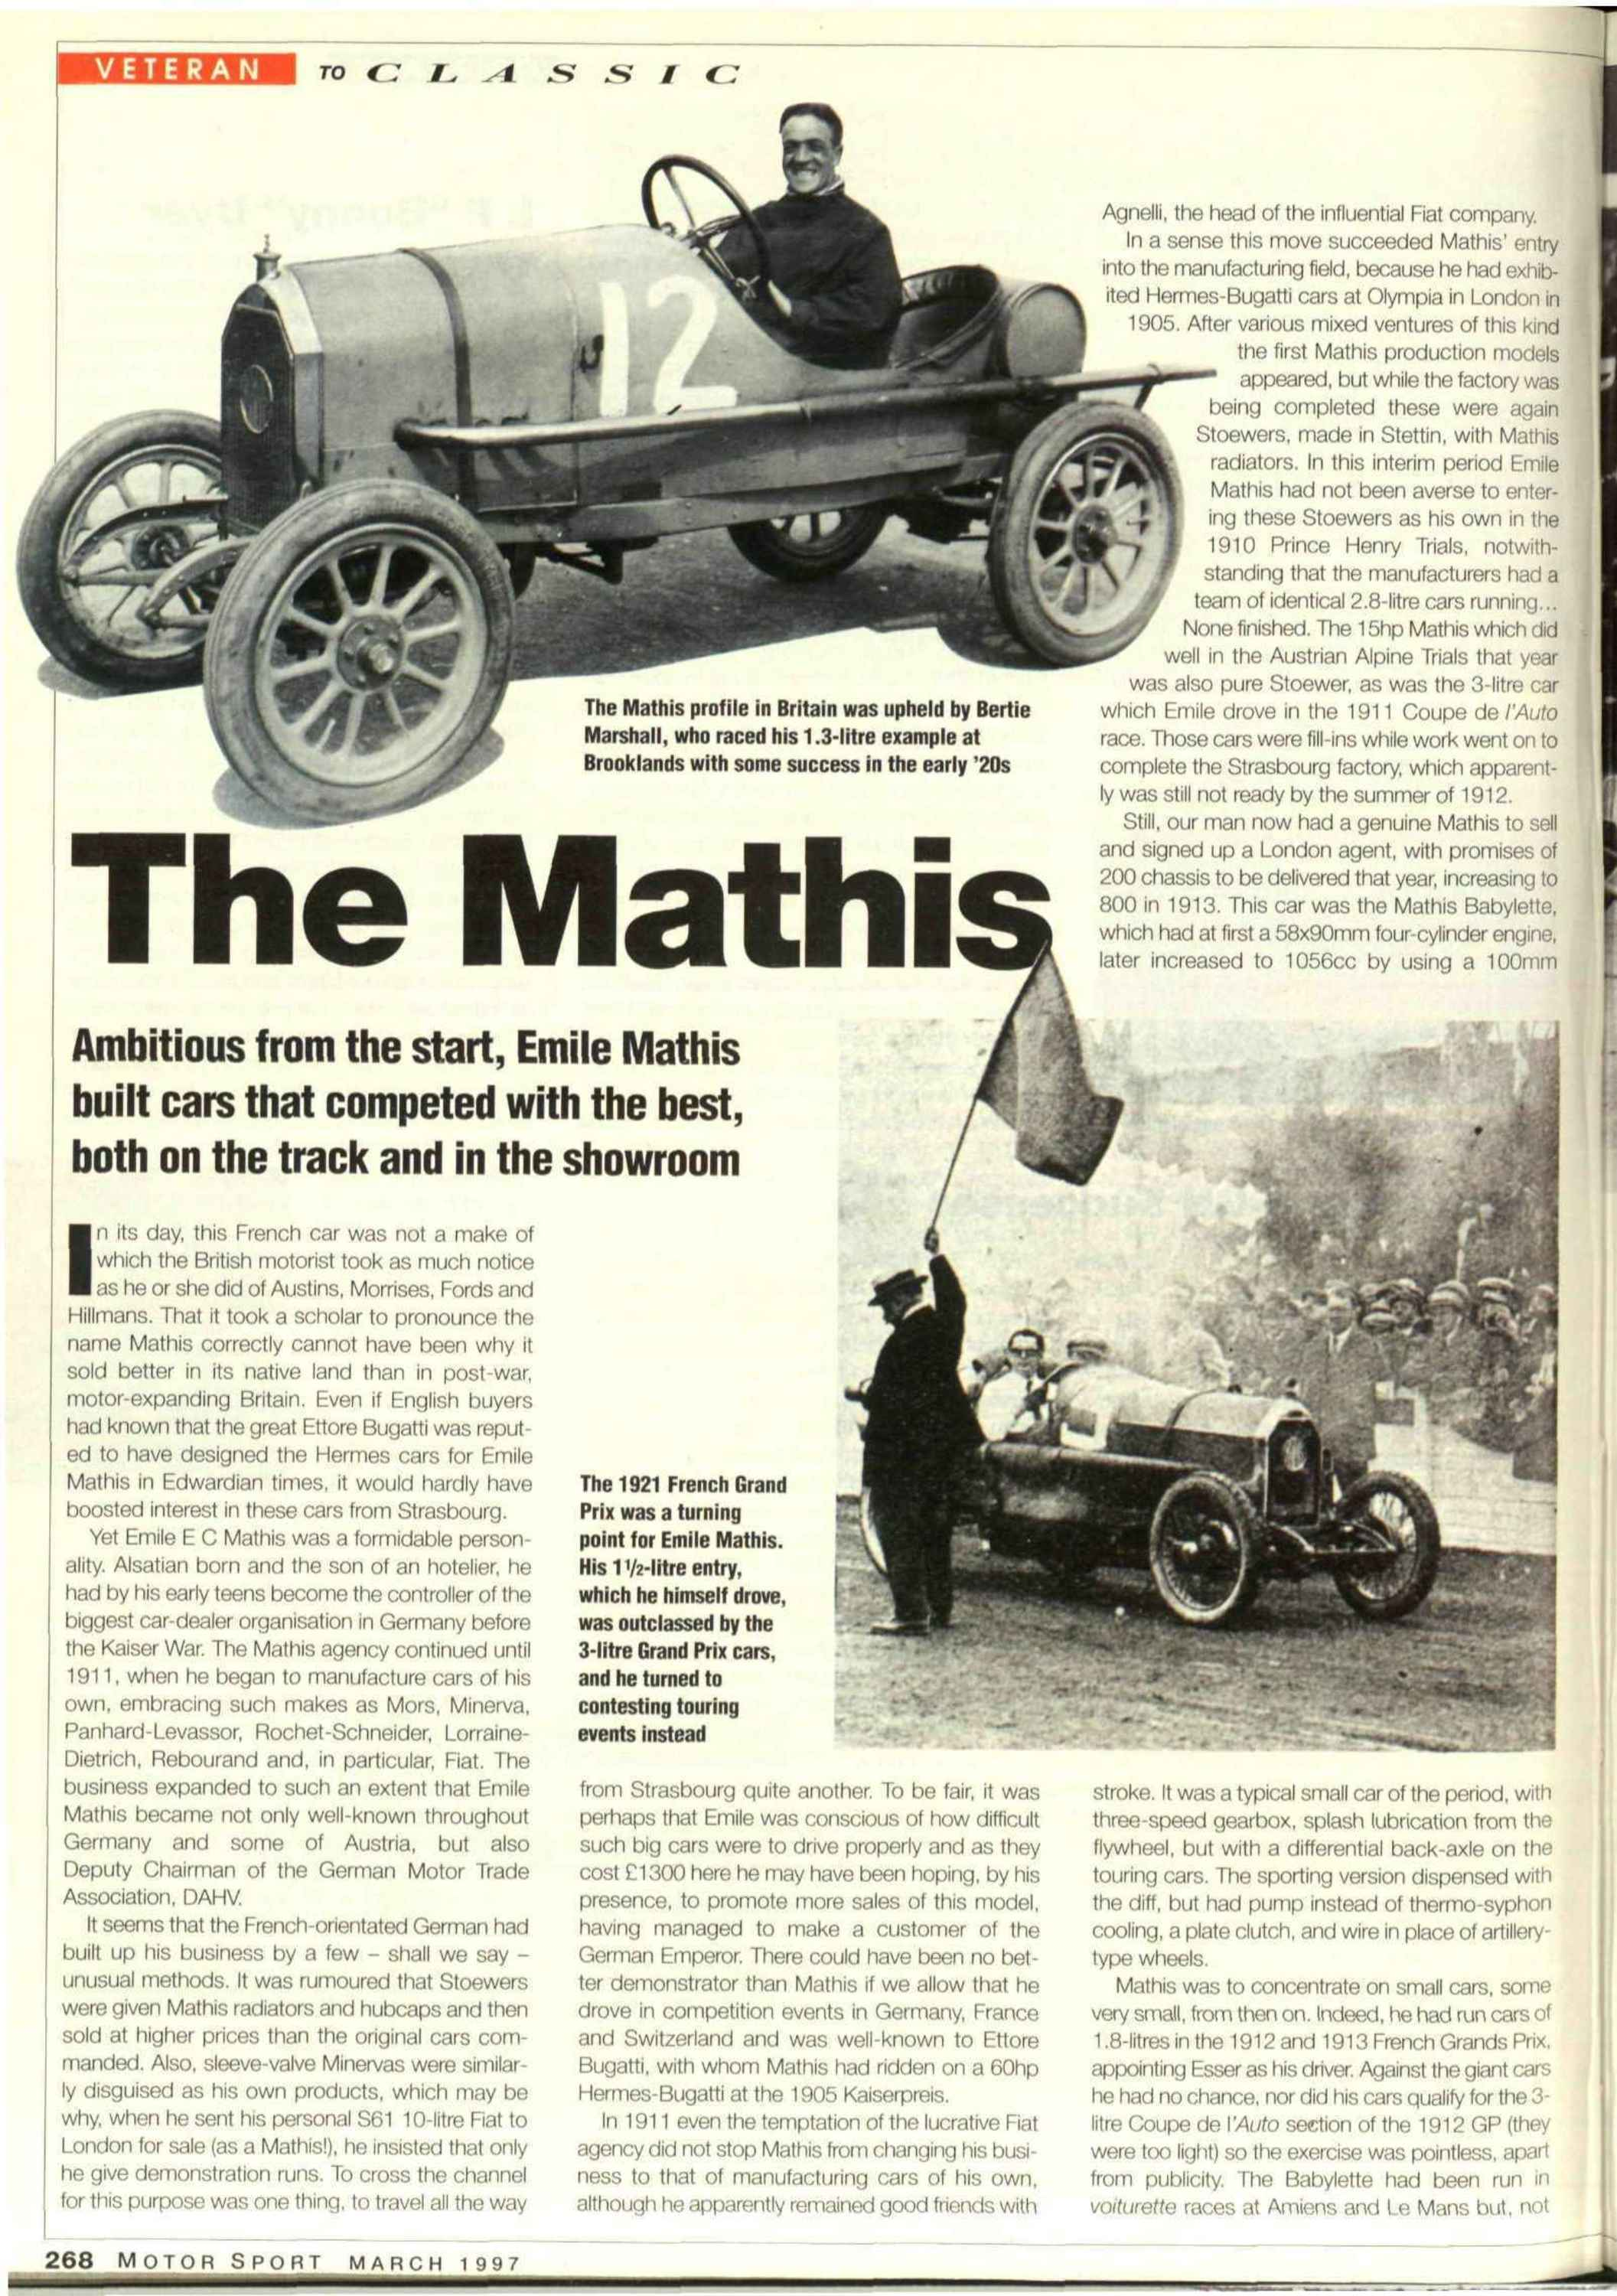 The Mathis | Motor Sport Magazine Archive